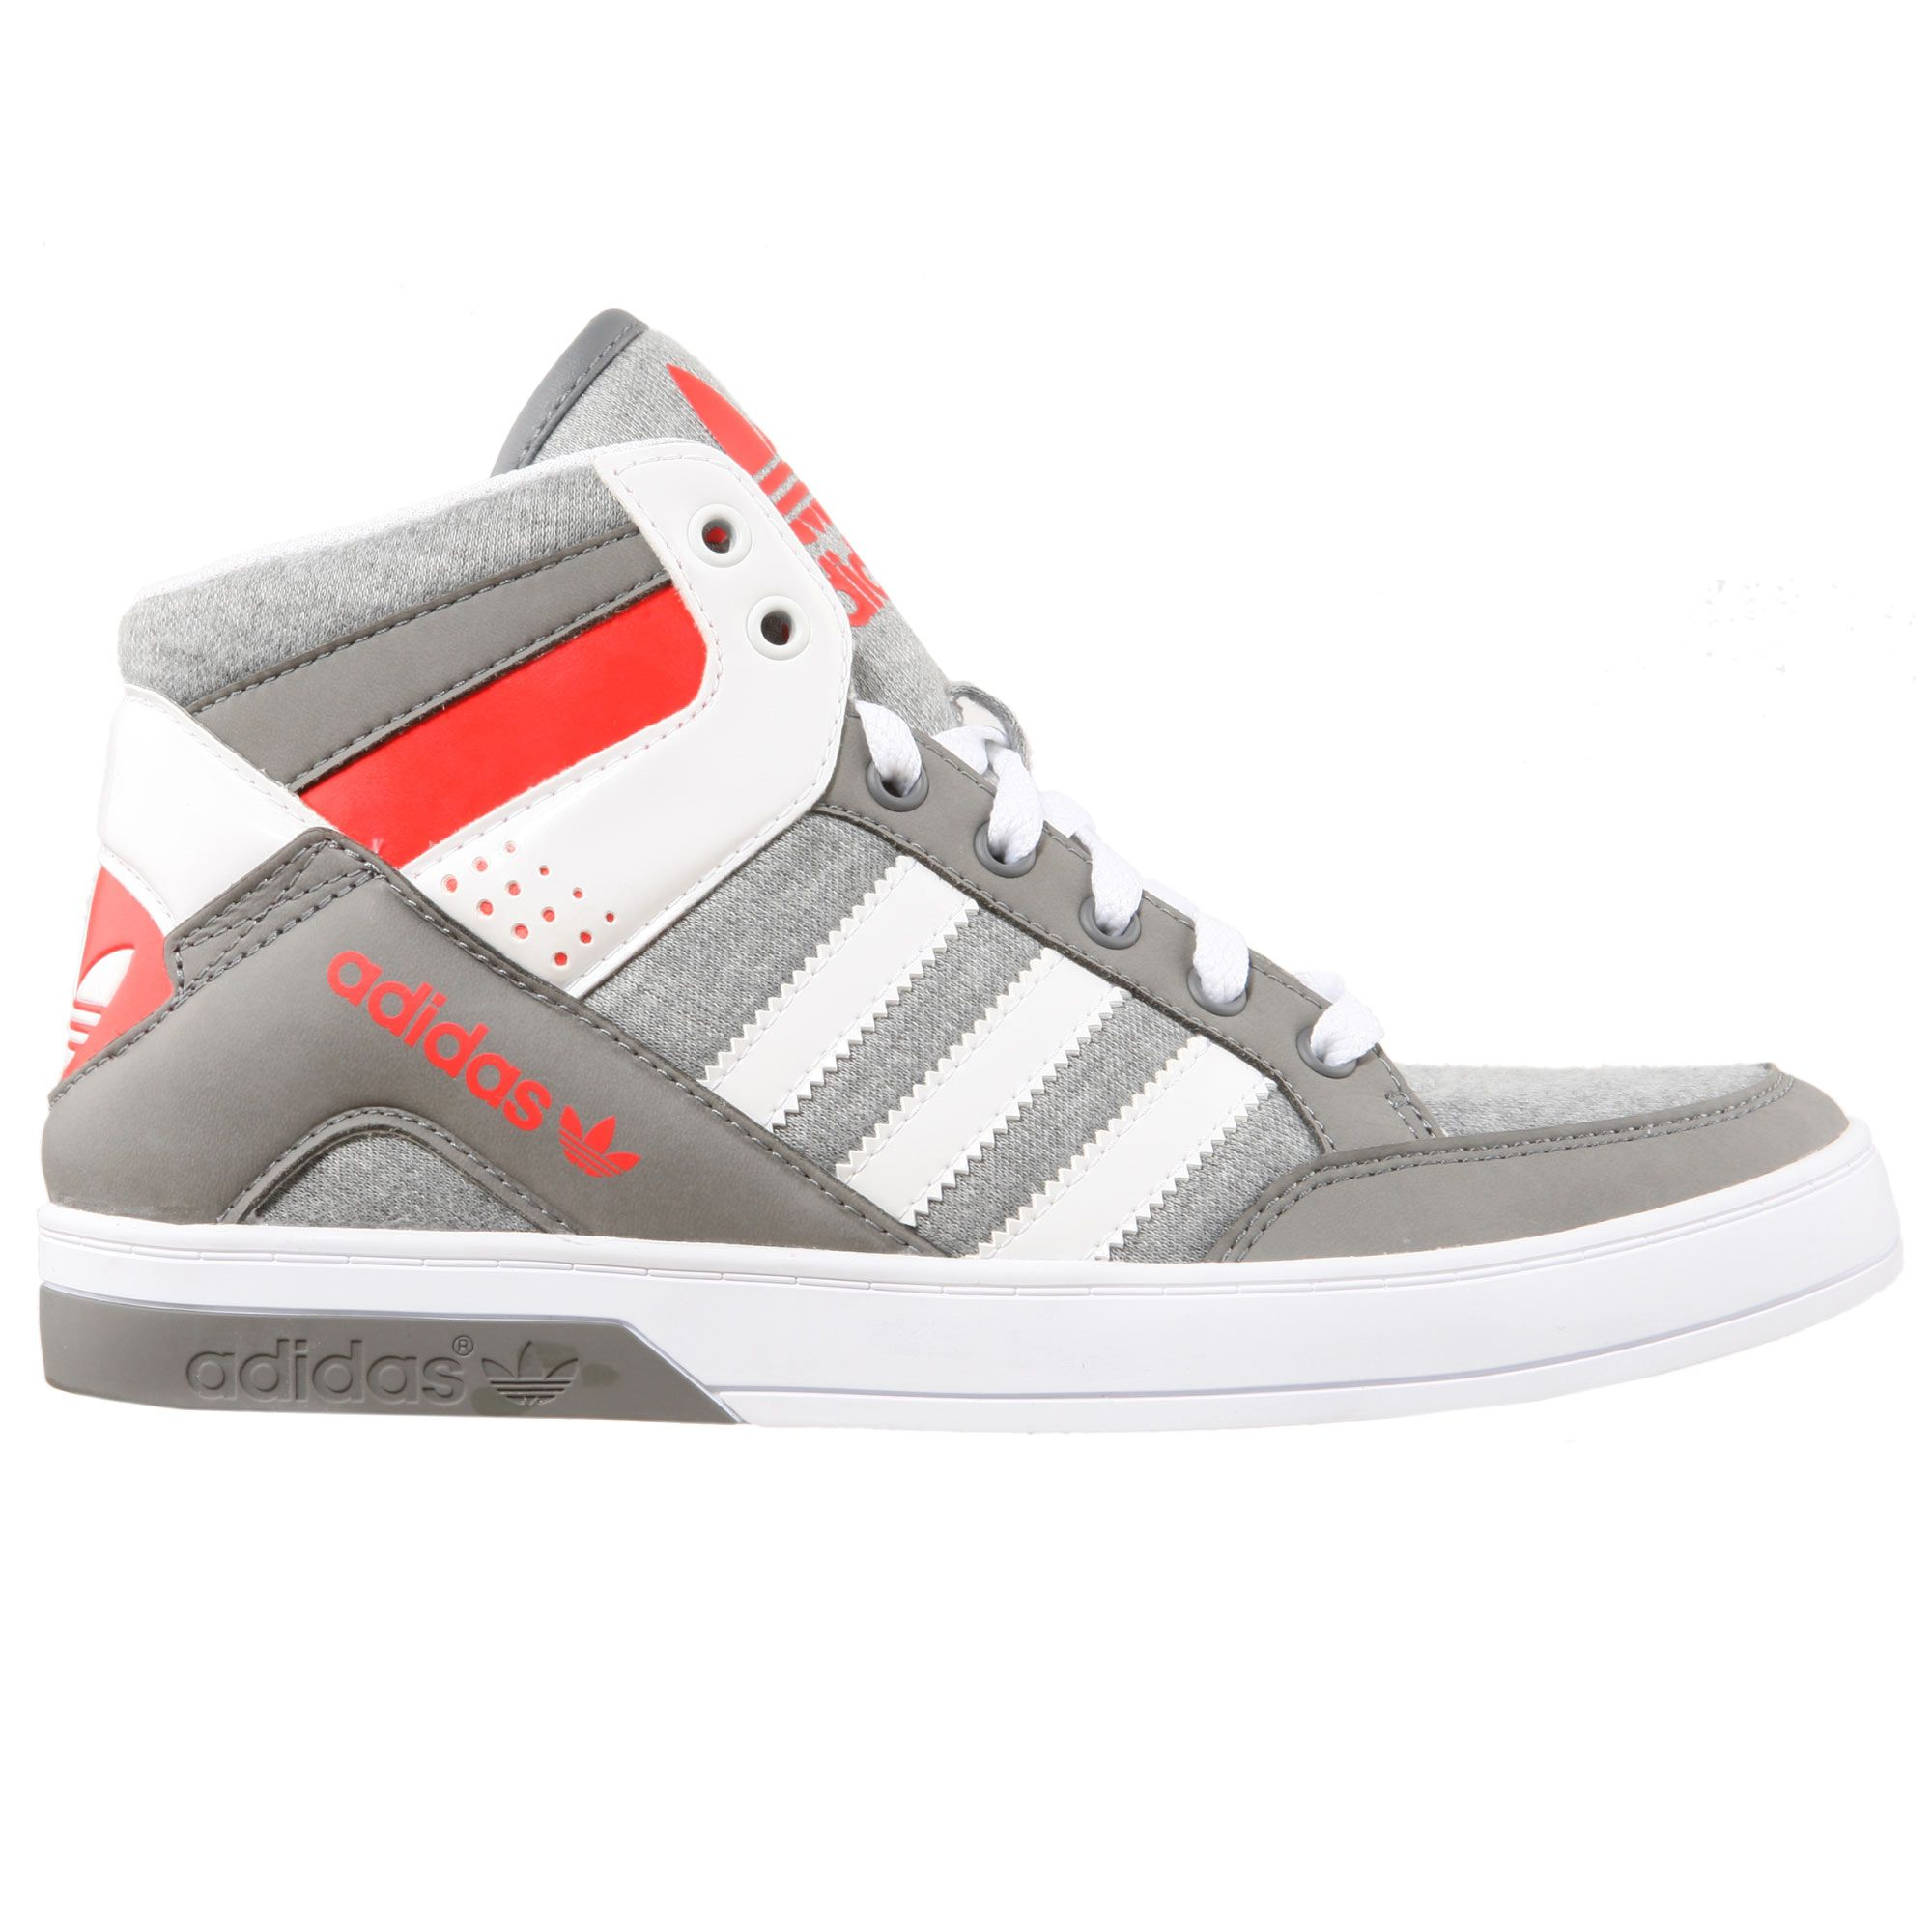 adidas HARD COURT BLOCK W Textile (jersey) | adidas UK